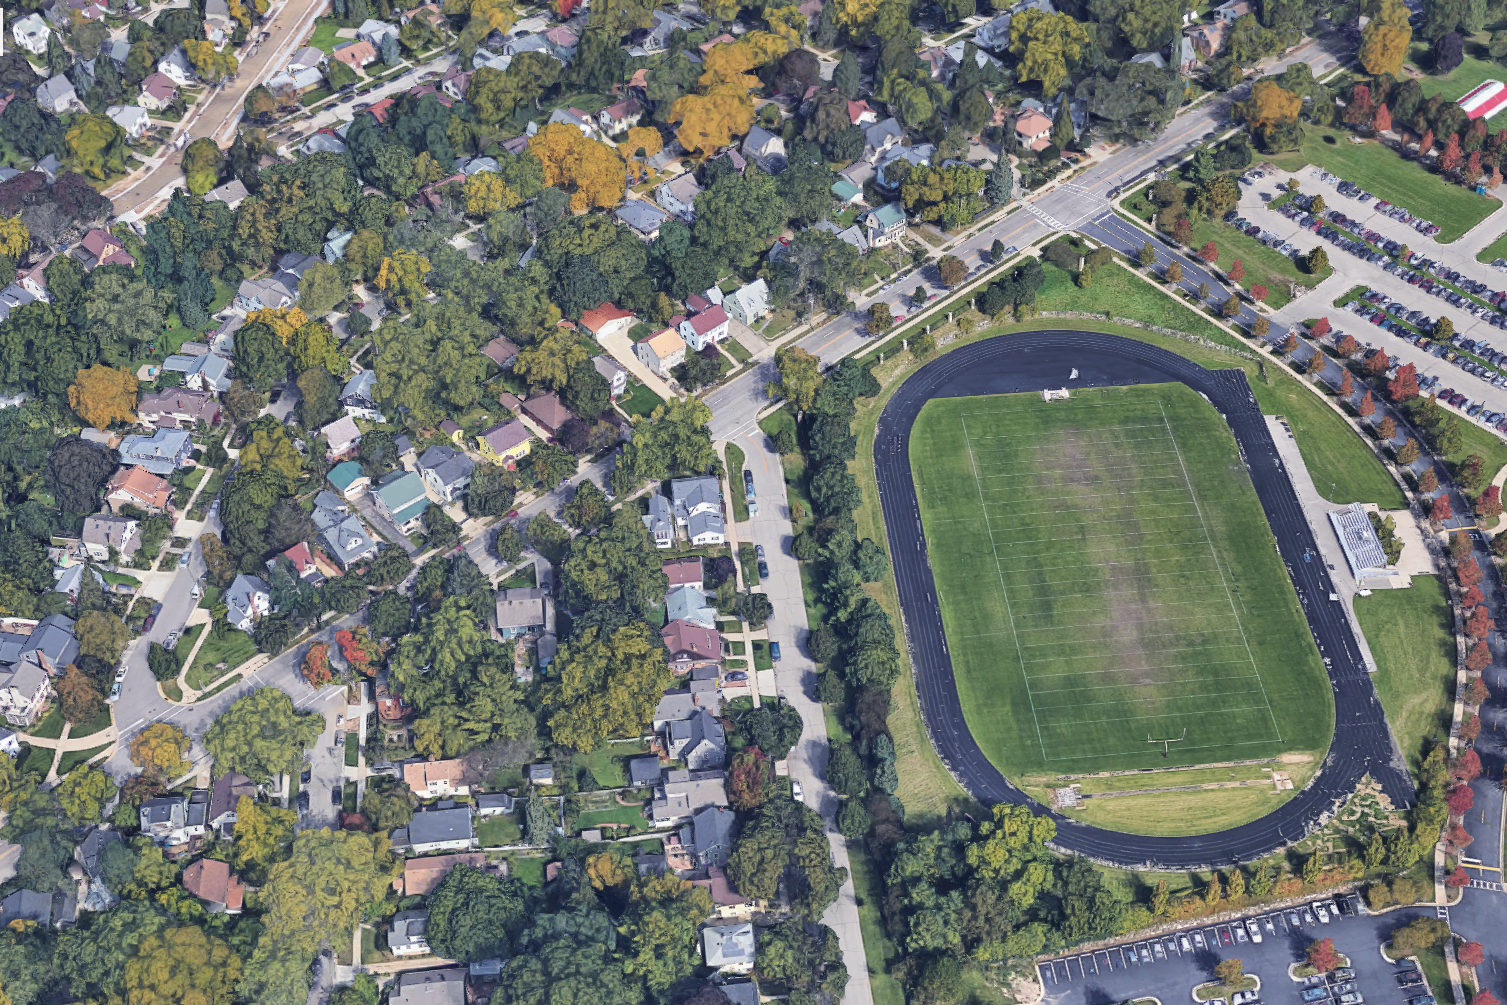 The proposed stadium is closer to neighborhood homes than it is to the school building. Edgewood High School is to the right of the field—out of the frame of this image.